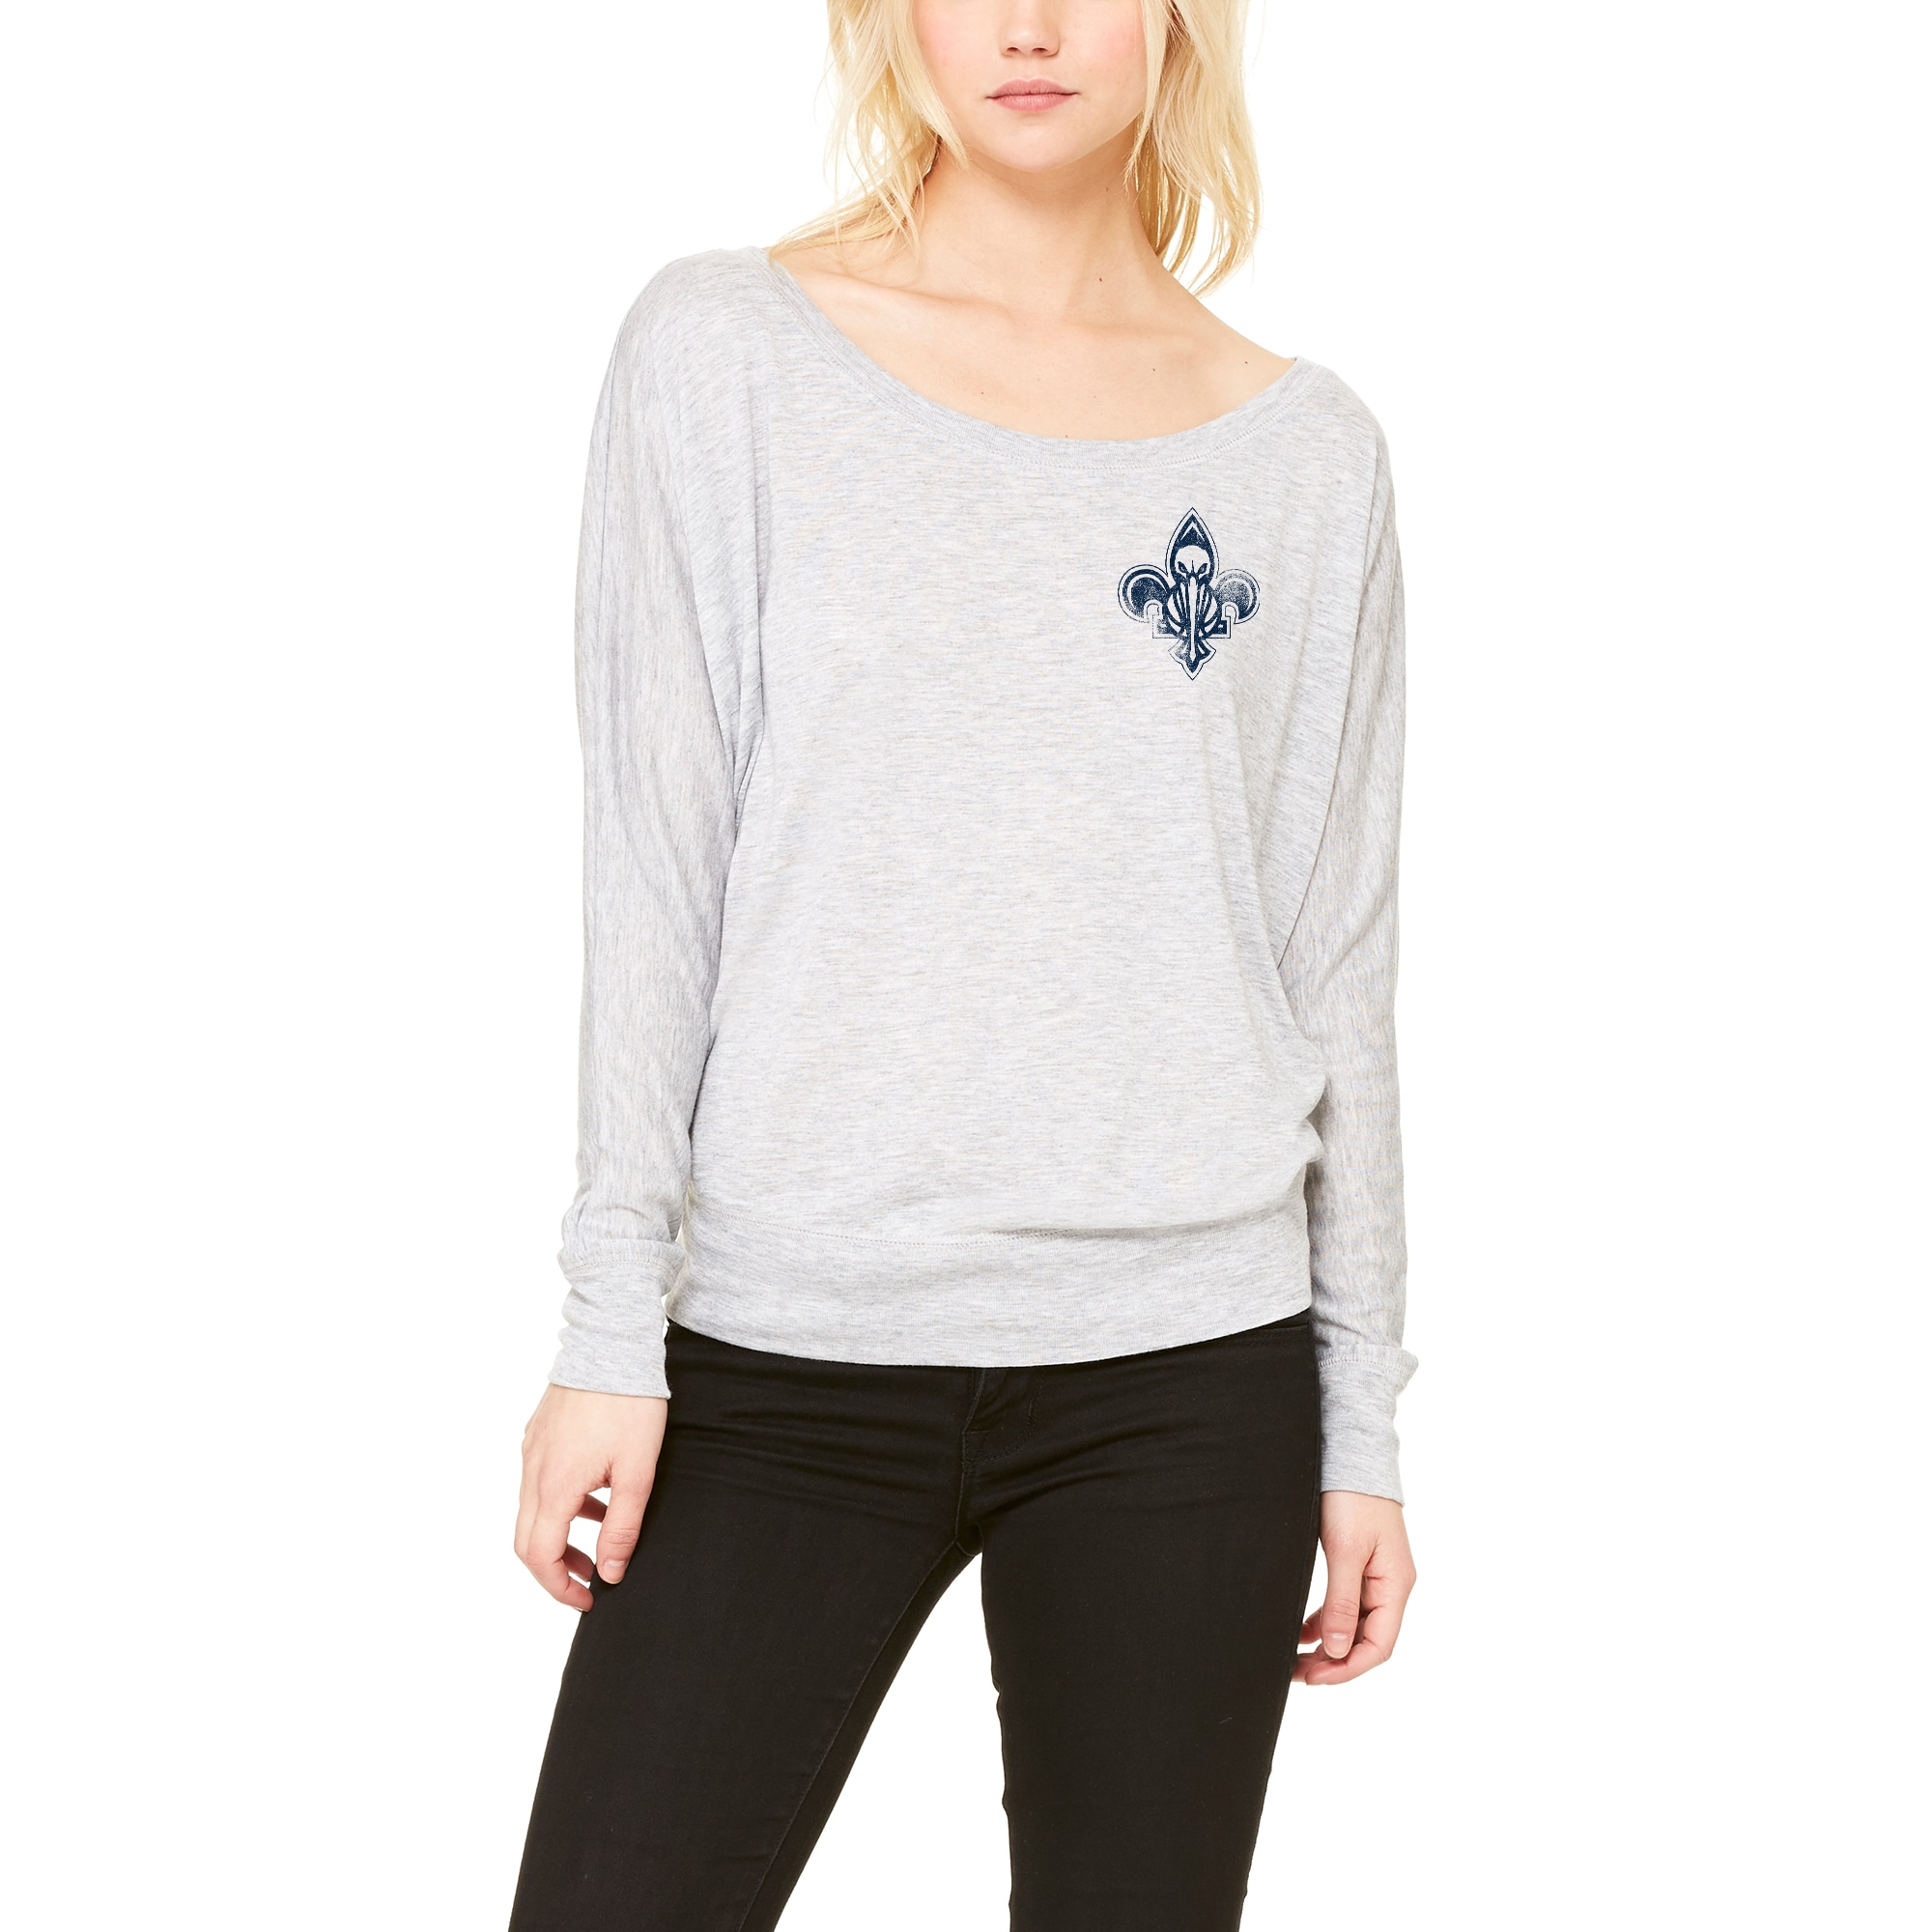 New Orleans Pelicans Let Loose by RNL Women's Winning Off-Shoulder Long Sleeve T-Shirt - Heathered Gray